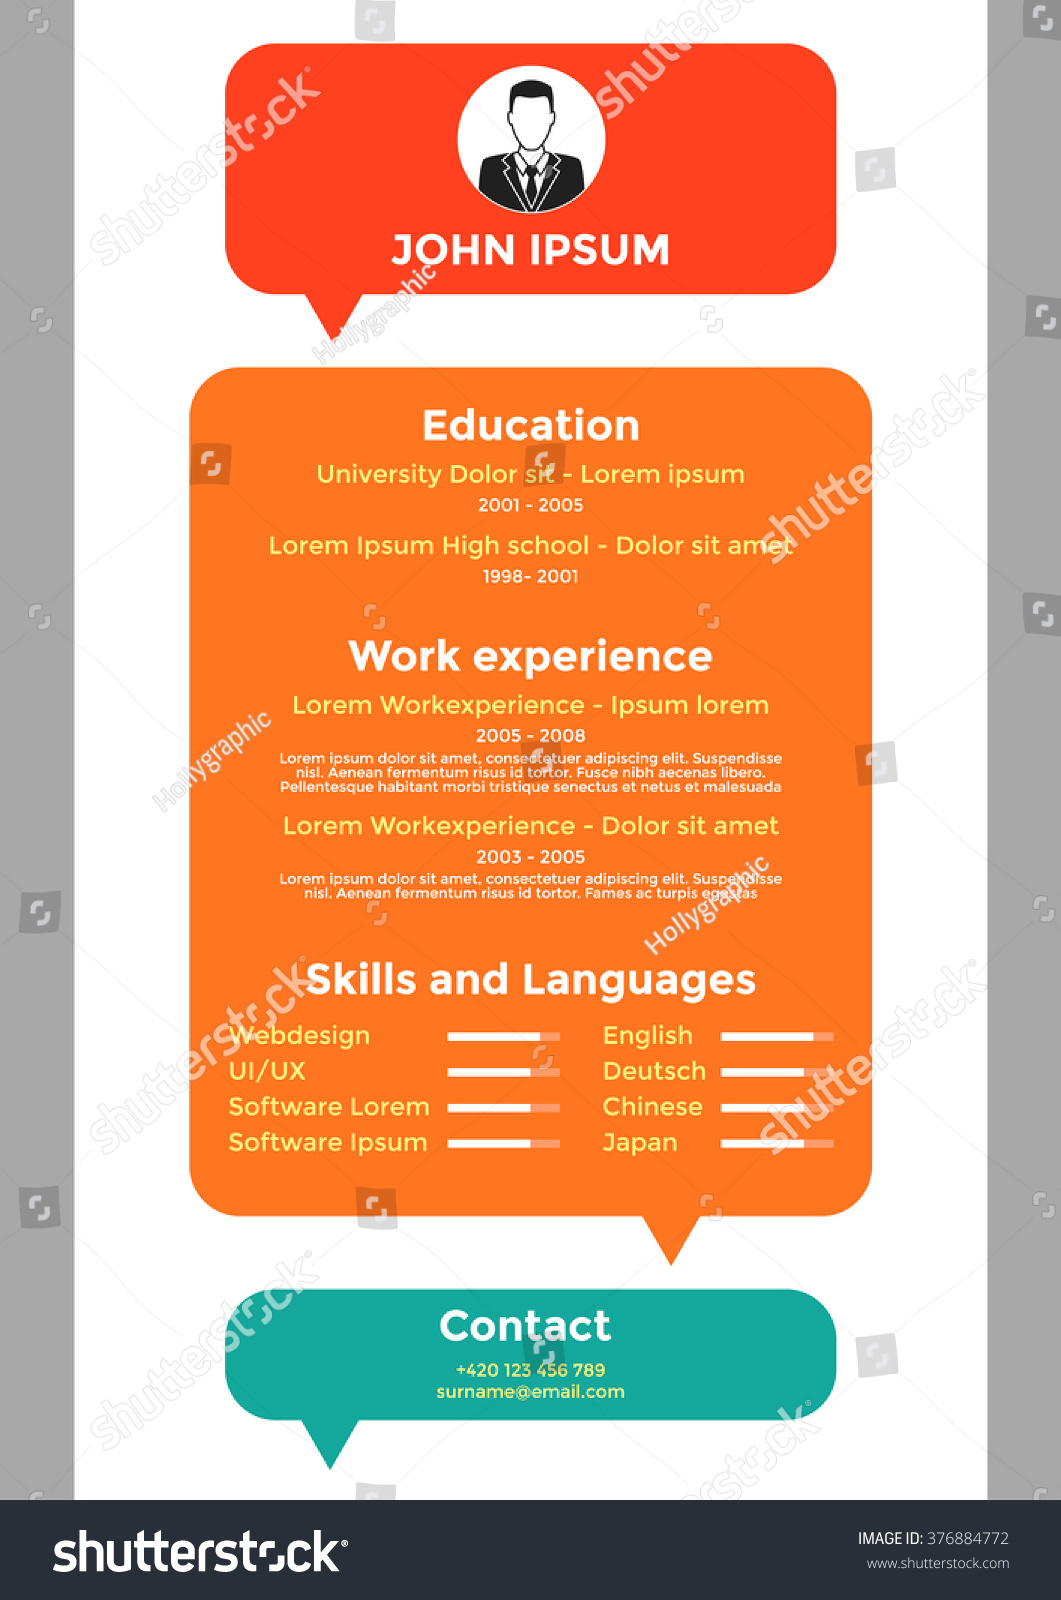 cv resume template vector graphic layout modern cv design for unemployed or for - Cv Design Templates Vector